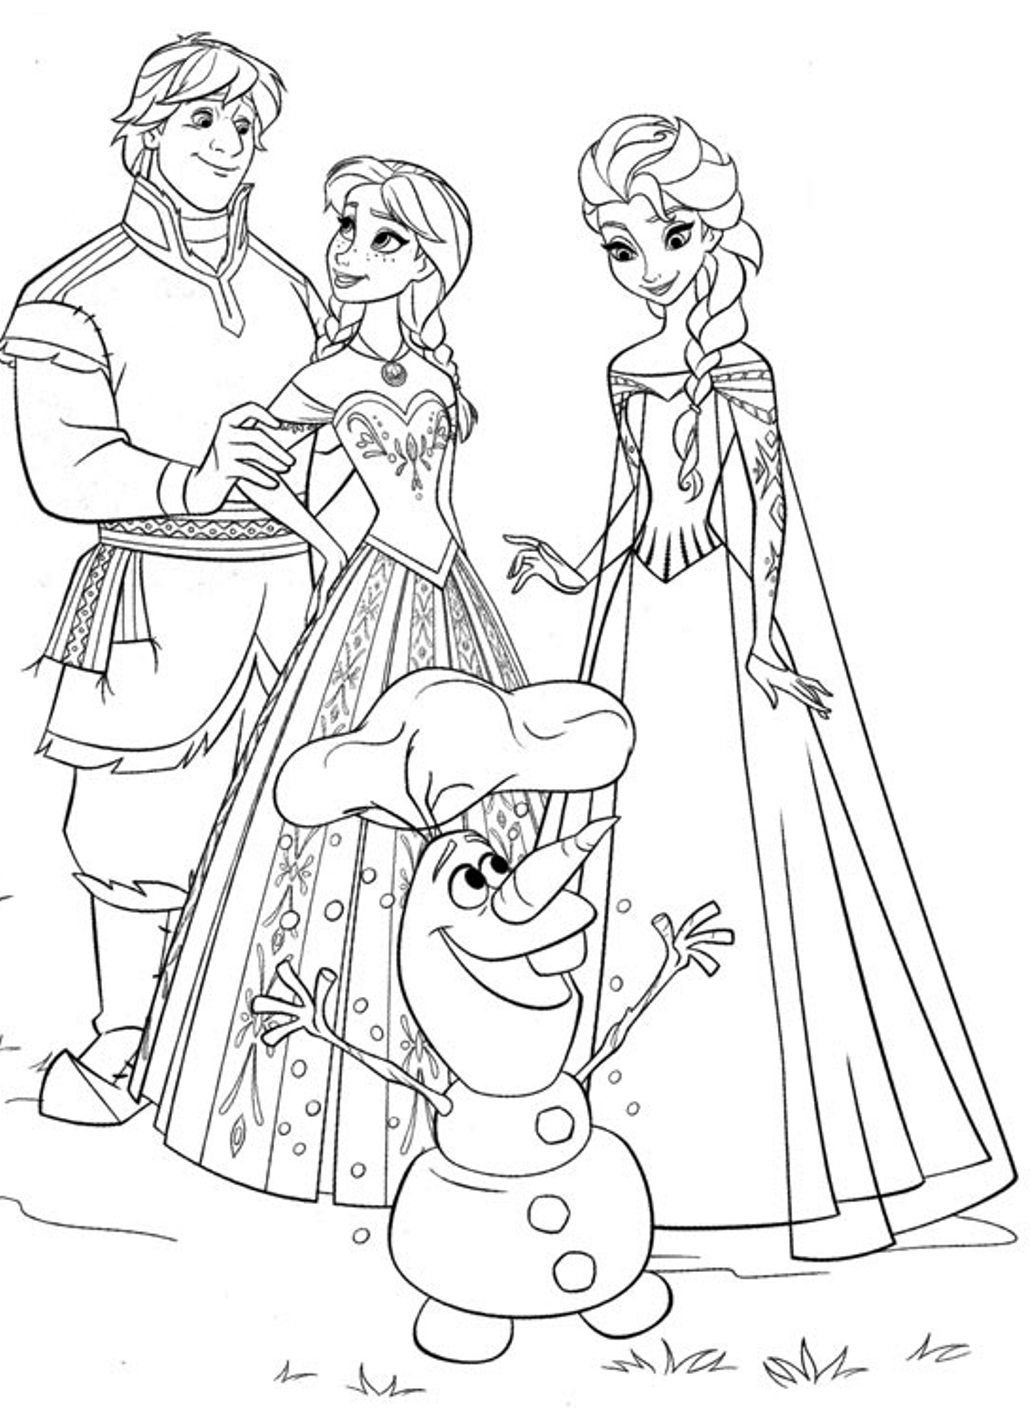 Coloring Pages Frozen Frozen coloring pages, Kids